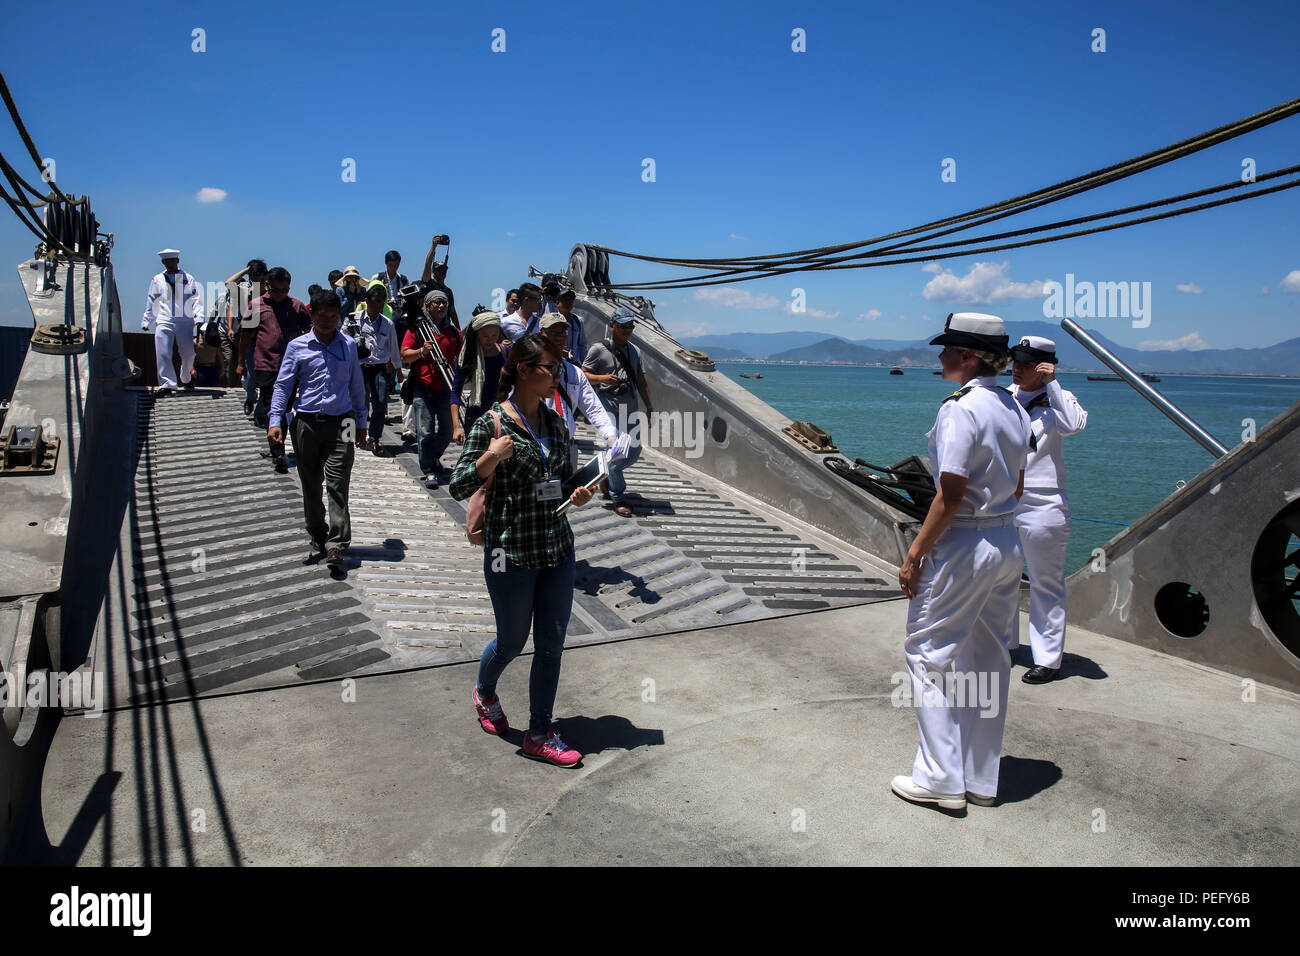 150817-M-GO800-236 DA NANG, Vietnam (Aug. 17, 2015) – Lt. Chelsea Irish leads local Vietnamese news media up the ramp of the Military Sealift Command joint high speed vessel USNS Millinocket (JHSV 3) during a ship tour Aug. 17. Task Force Forager, embarked aboard the Millinocket  is serving as the secondary platform for Pacific Partnership, led by an expeditionary command element from the Navy's 30th Naval Construction Regiment (30 NCR) from Port Hueneme, Calif. Now in its 10th iteration, Pacific Partnership is the largest annual multilateral humanitarian assistance and disaster relief prepare - Stock Image